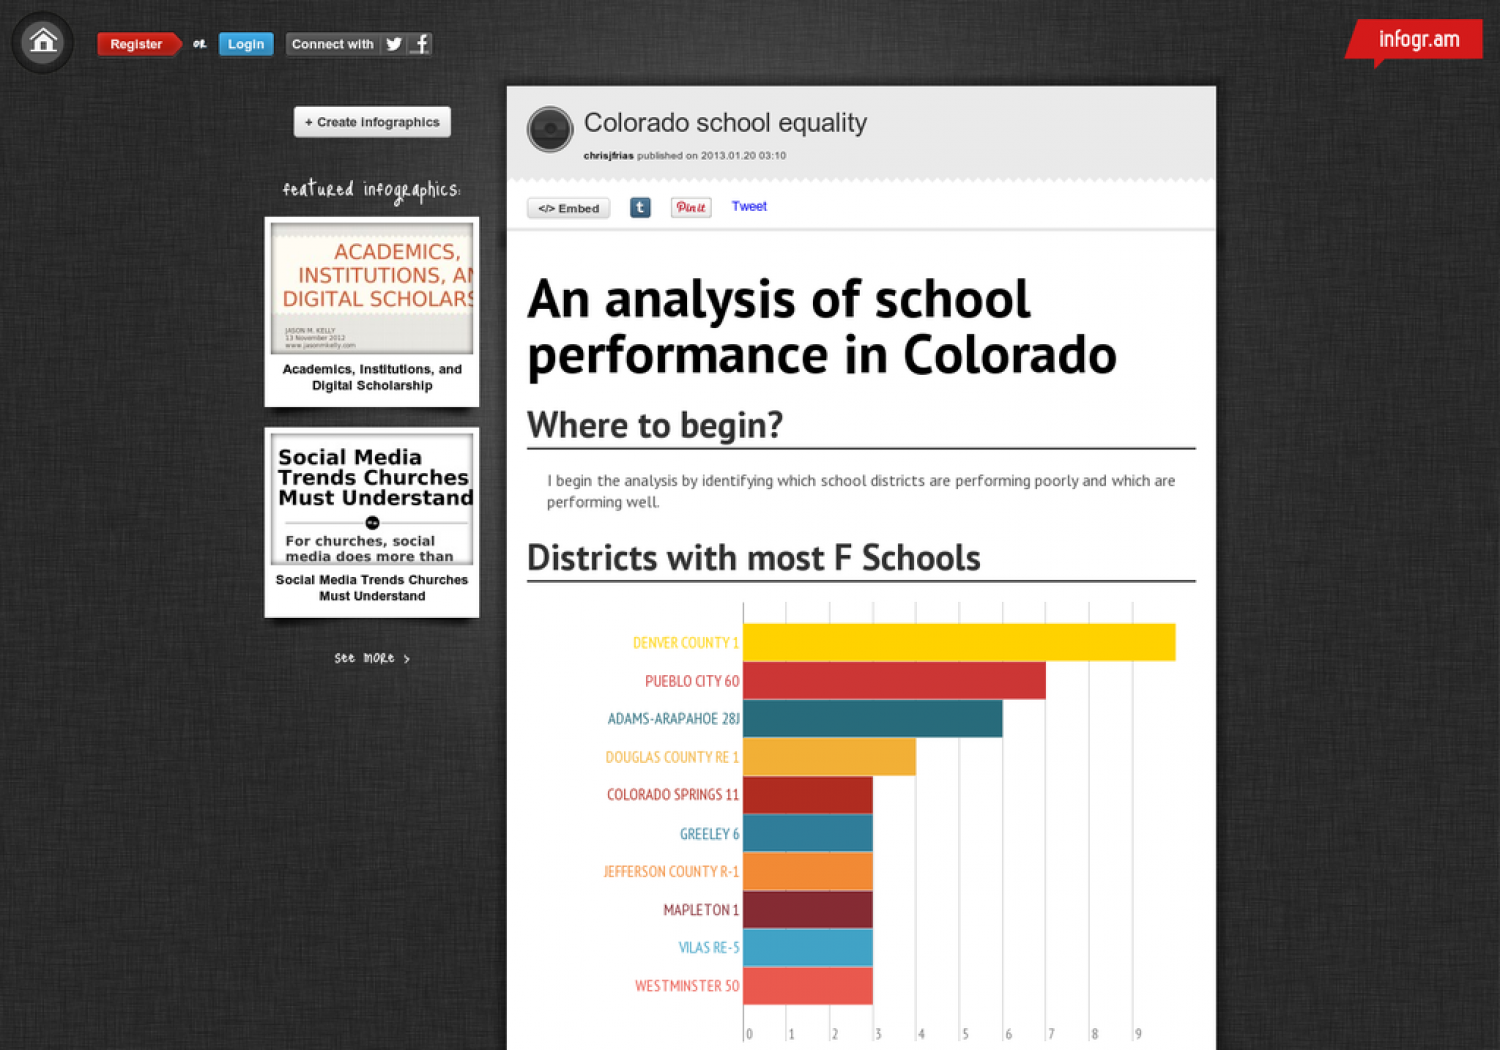 An Analysis of School Performance in Colorado Infographic